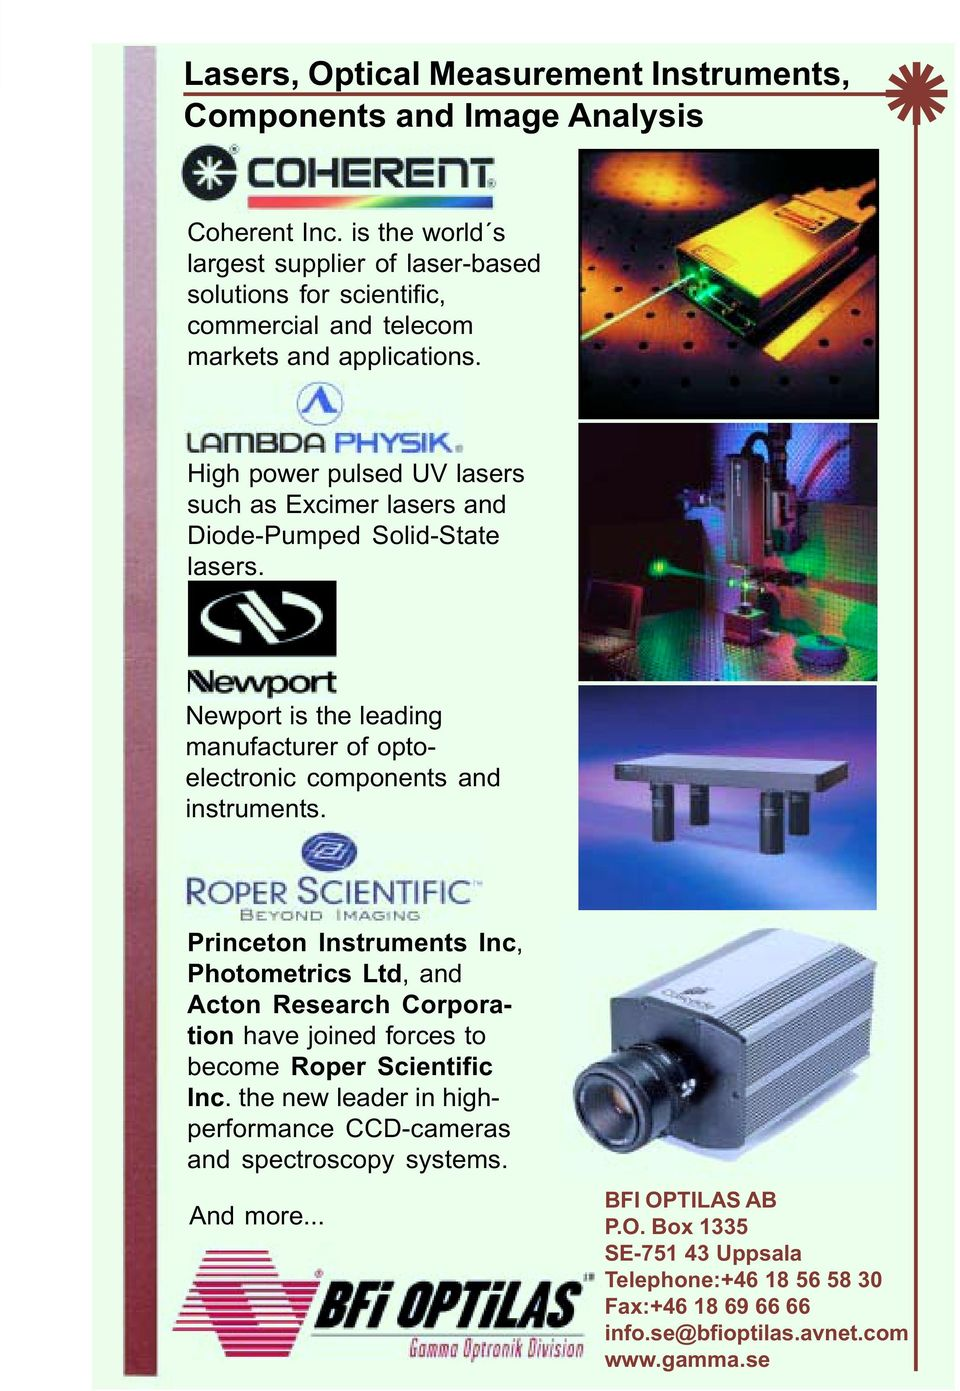 High power pulsed UV lasers such as Excimer lasers and Diode-Pumped Solid-State lasers. Newport is the leading manufacturer of optoelectronic components and instruments.